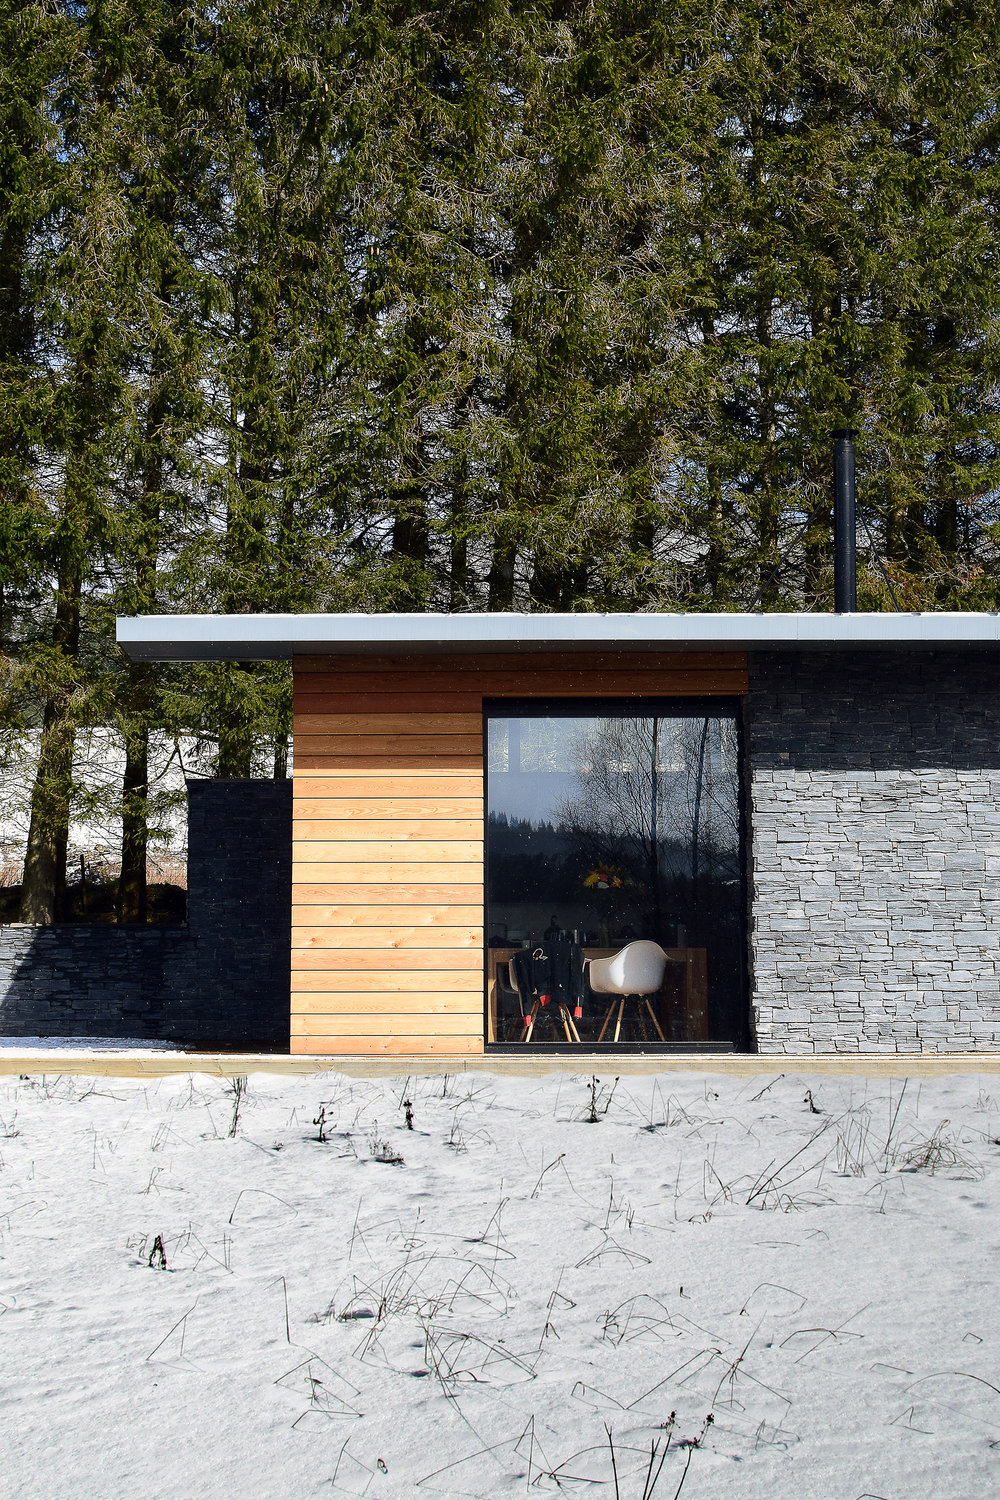 strathdon, house, timber, glass, award-winning, scotland, cairngorms, landscape, trees